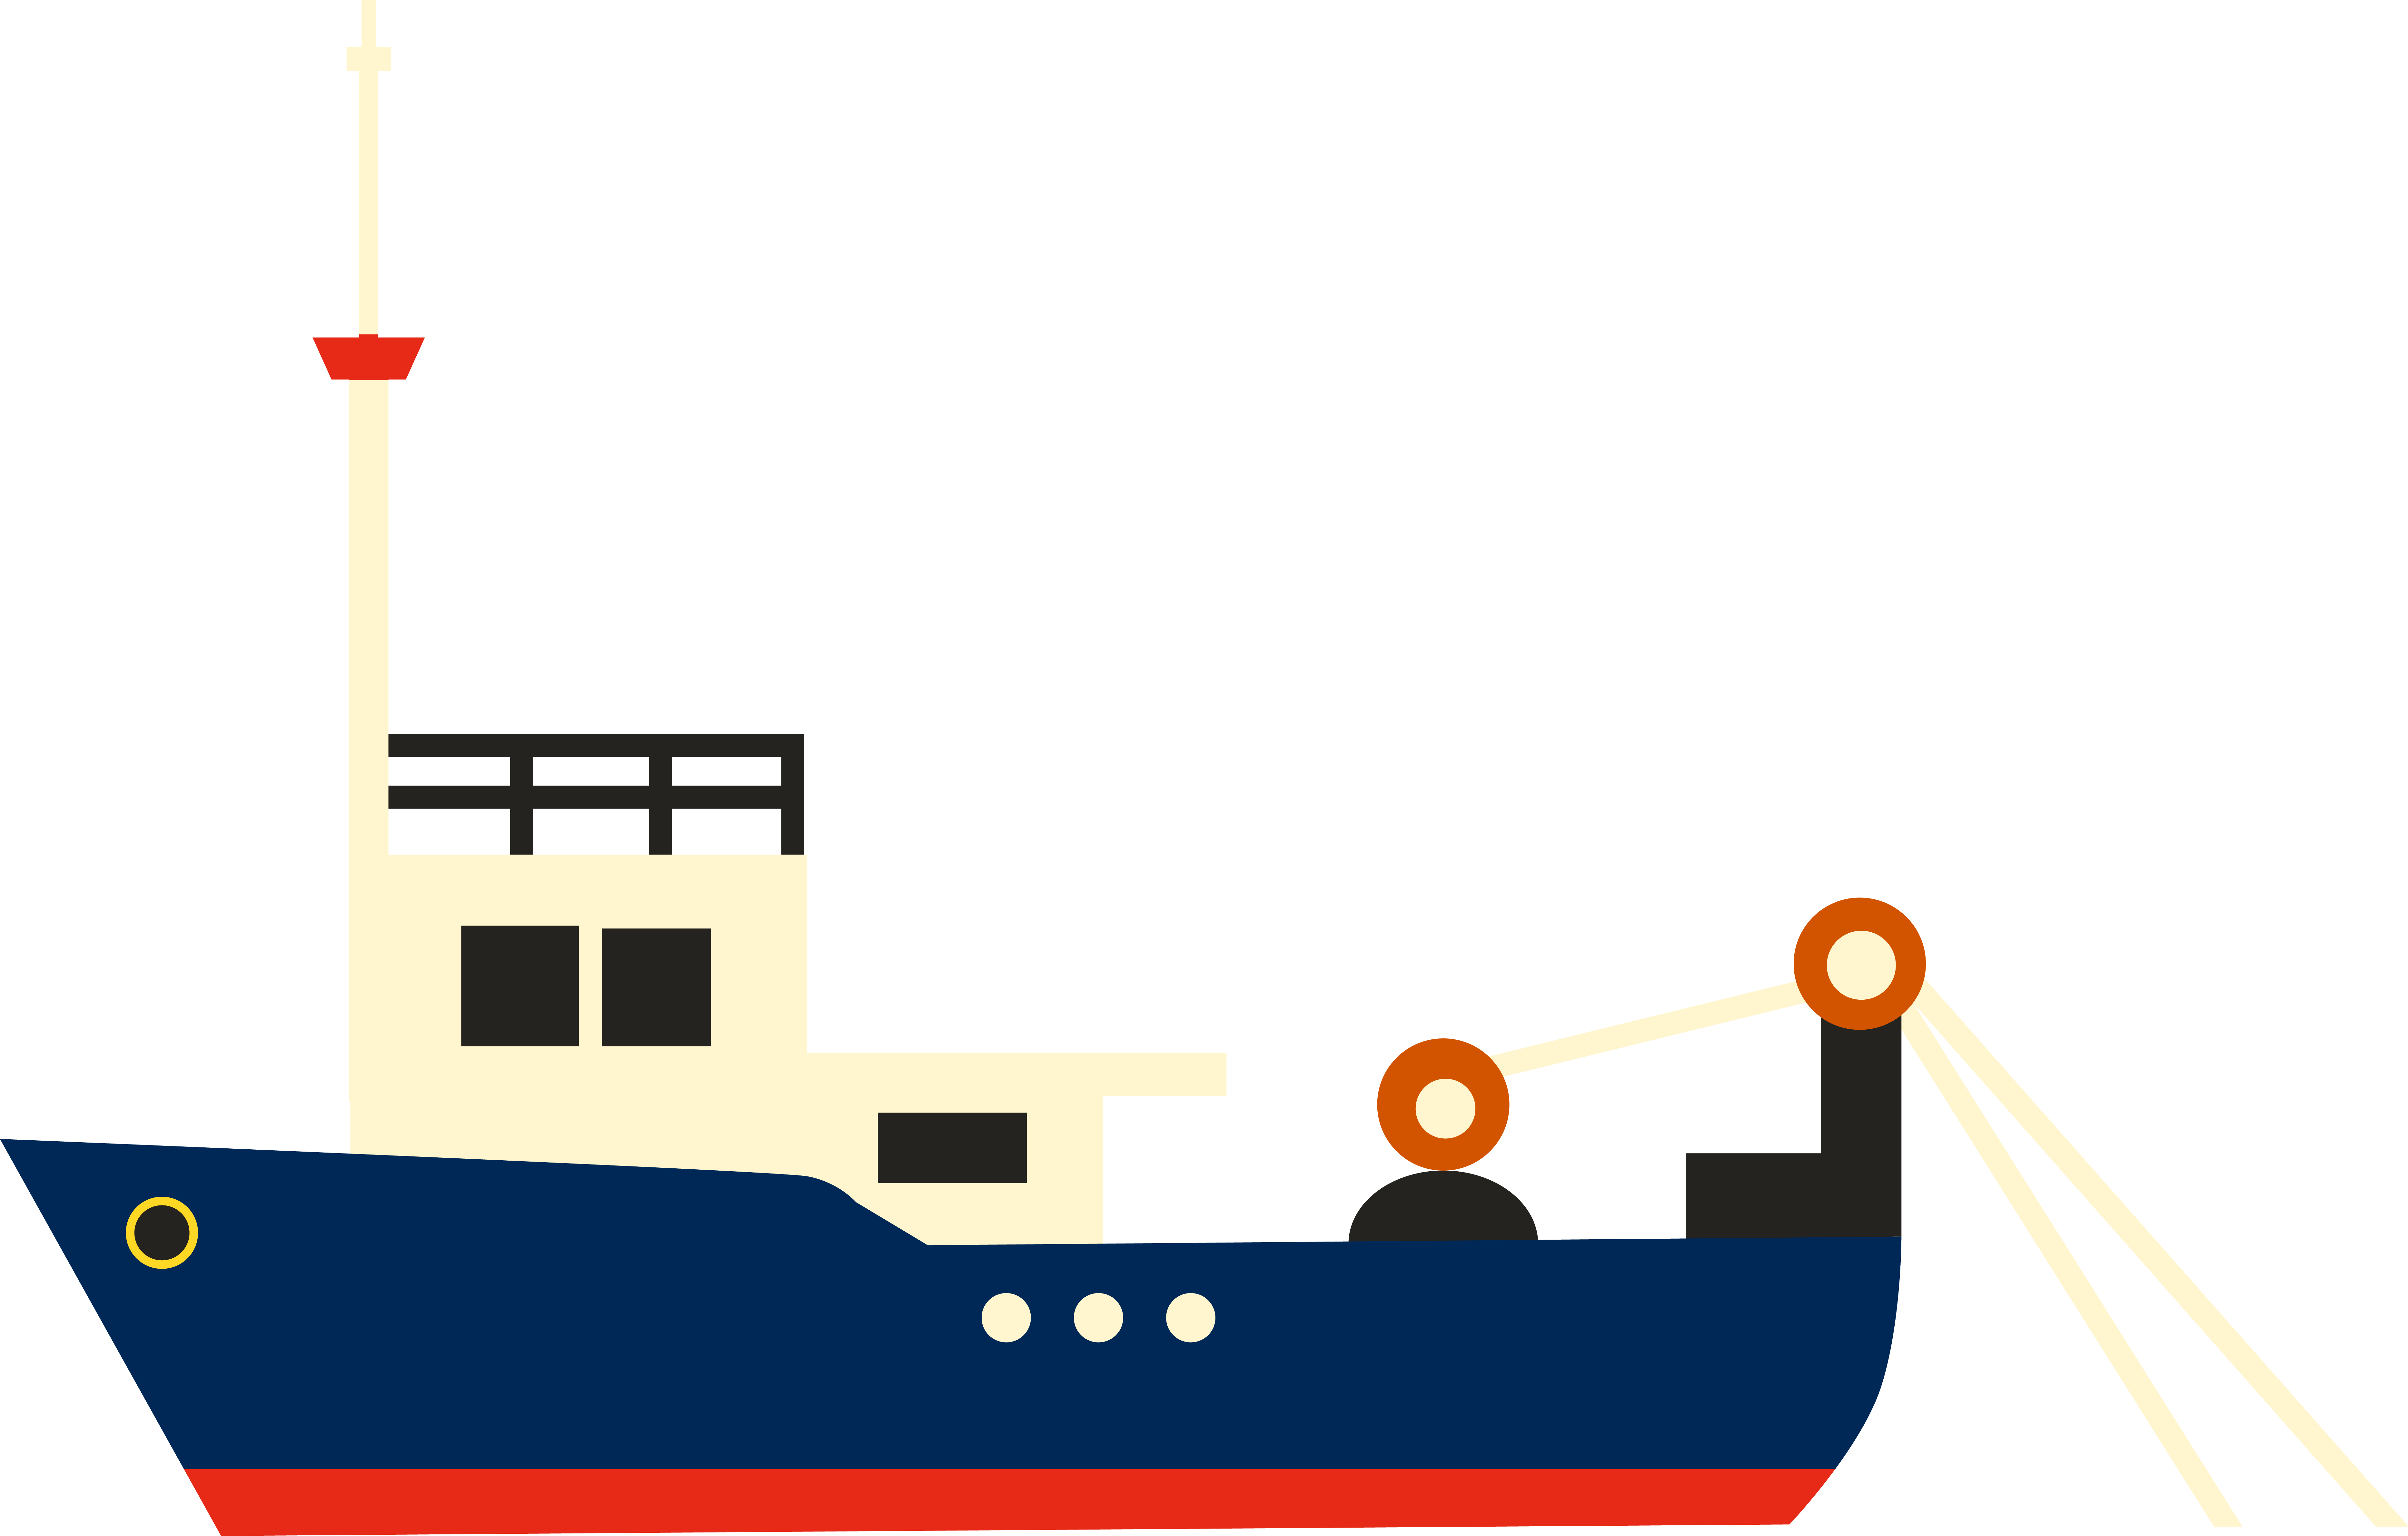 cartoon cargo ship png free cartoon cargo ship png transparent images 125111 pngio pngio com